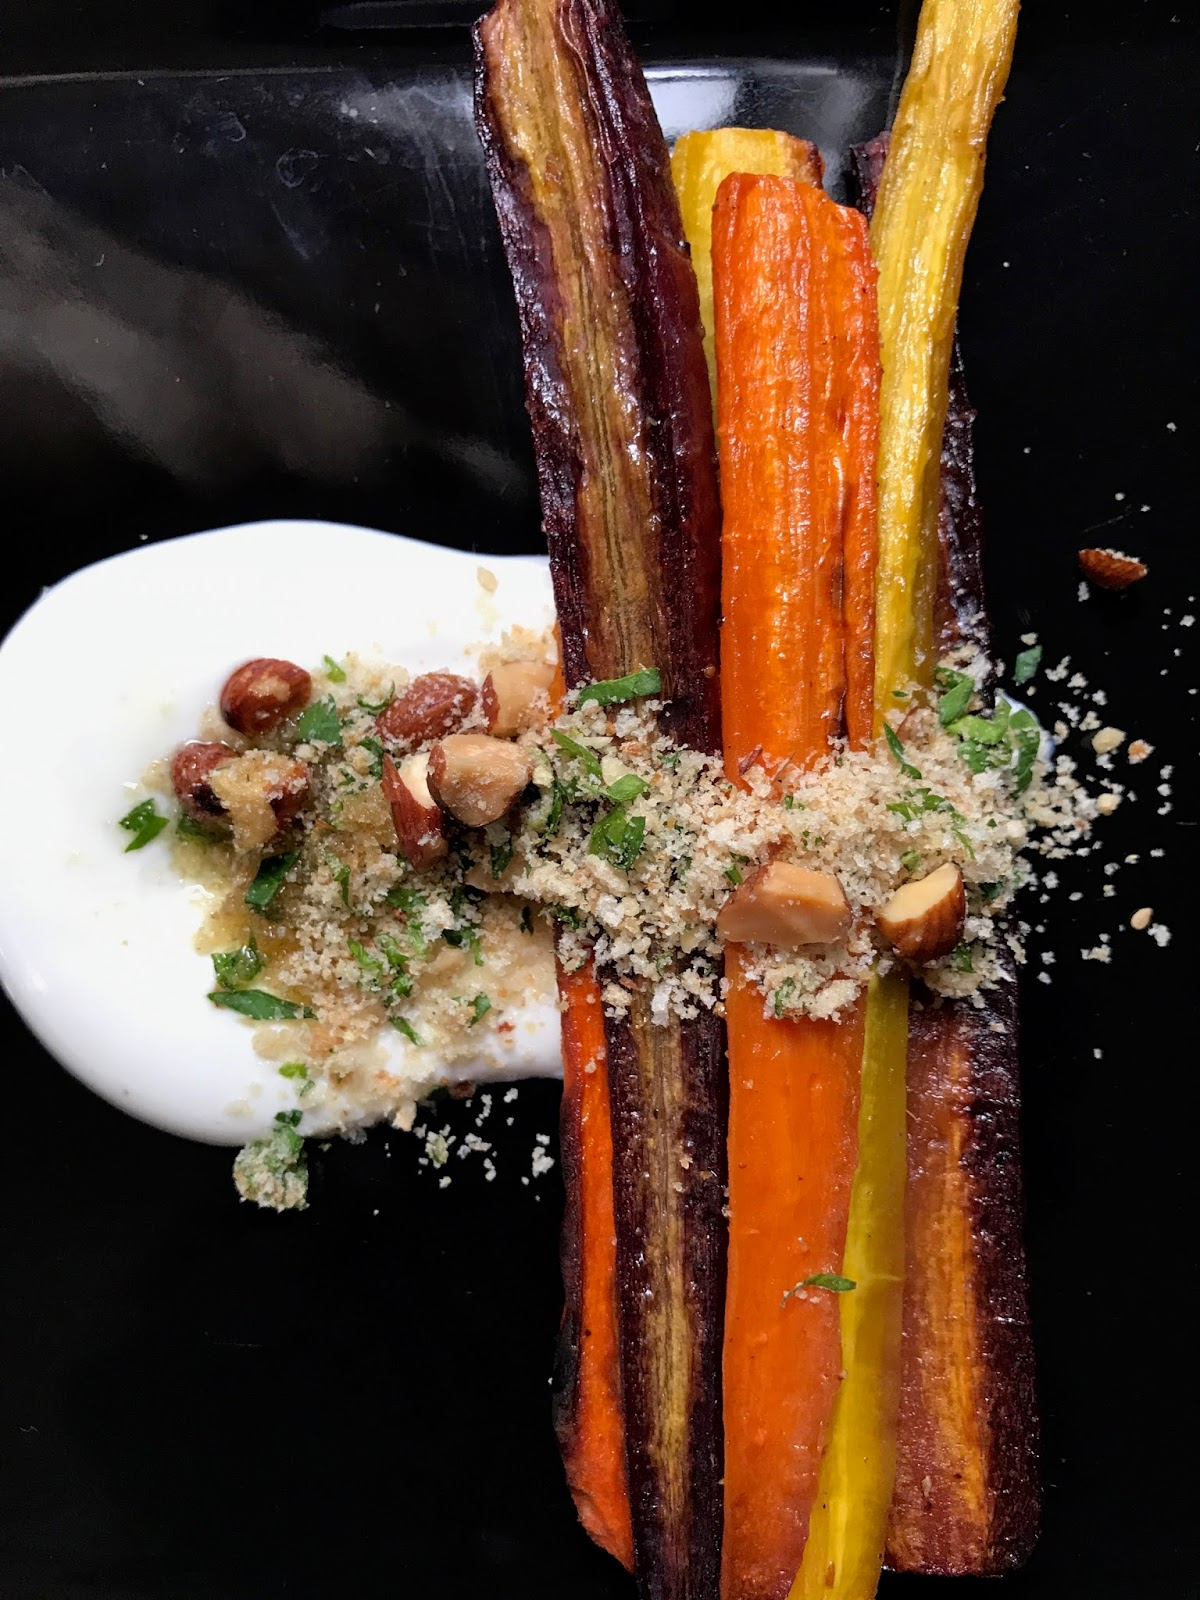 Eating Fabulously, Christopher Stewart, Roasted Rainbow Carrots with Fromage Blanc and Almond Lime Gremolata, rainbow carrots, tricolor carrots, fromage blanc, gremolata